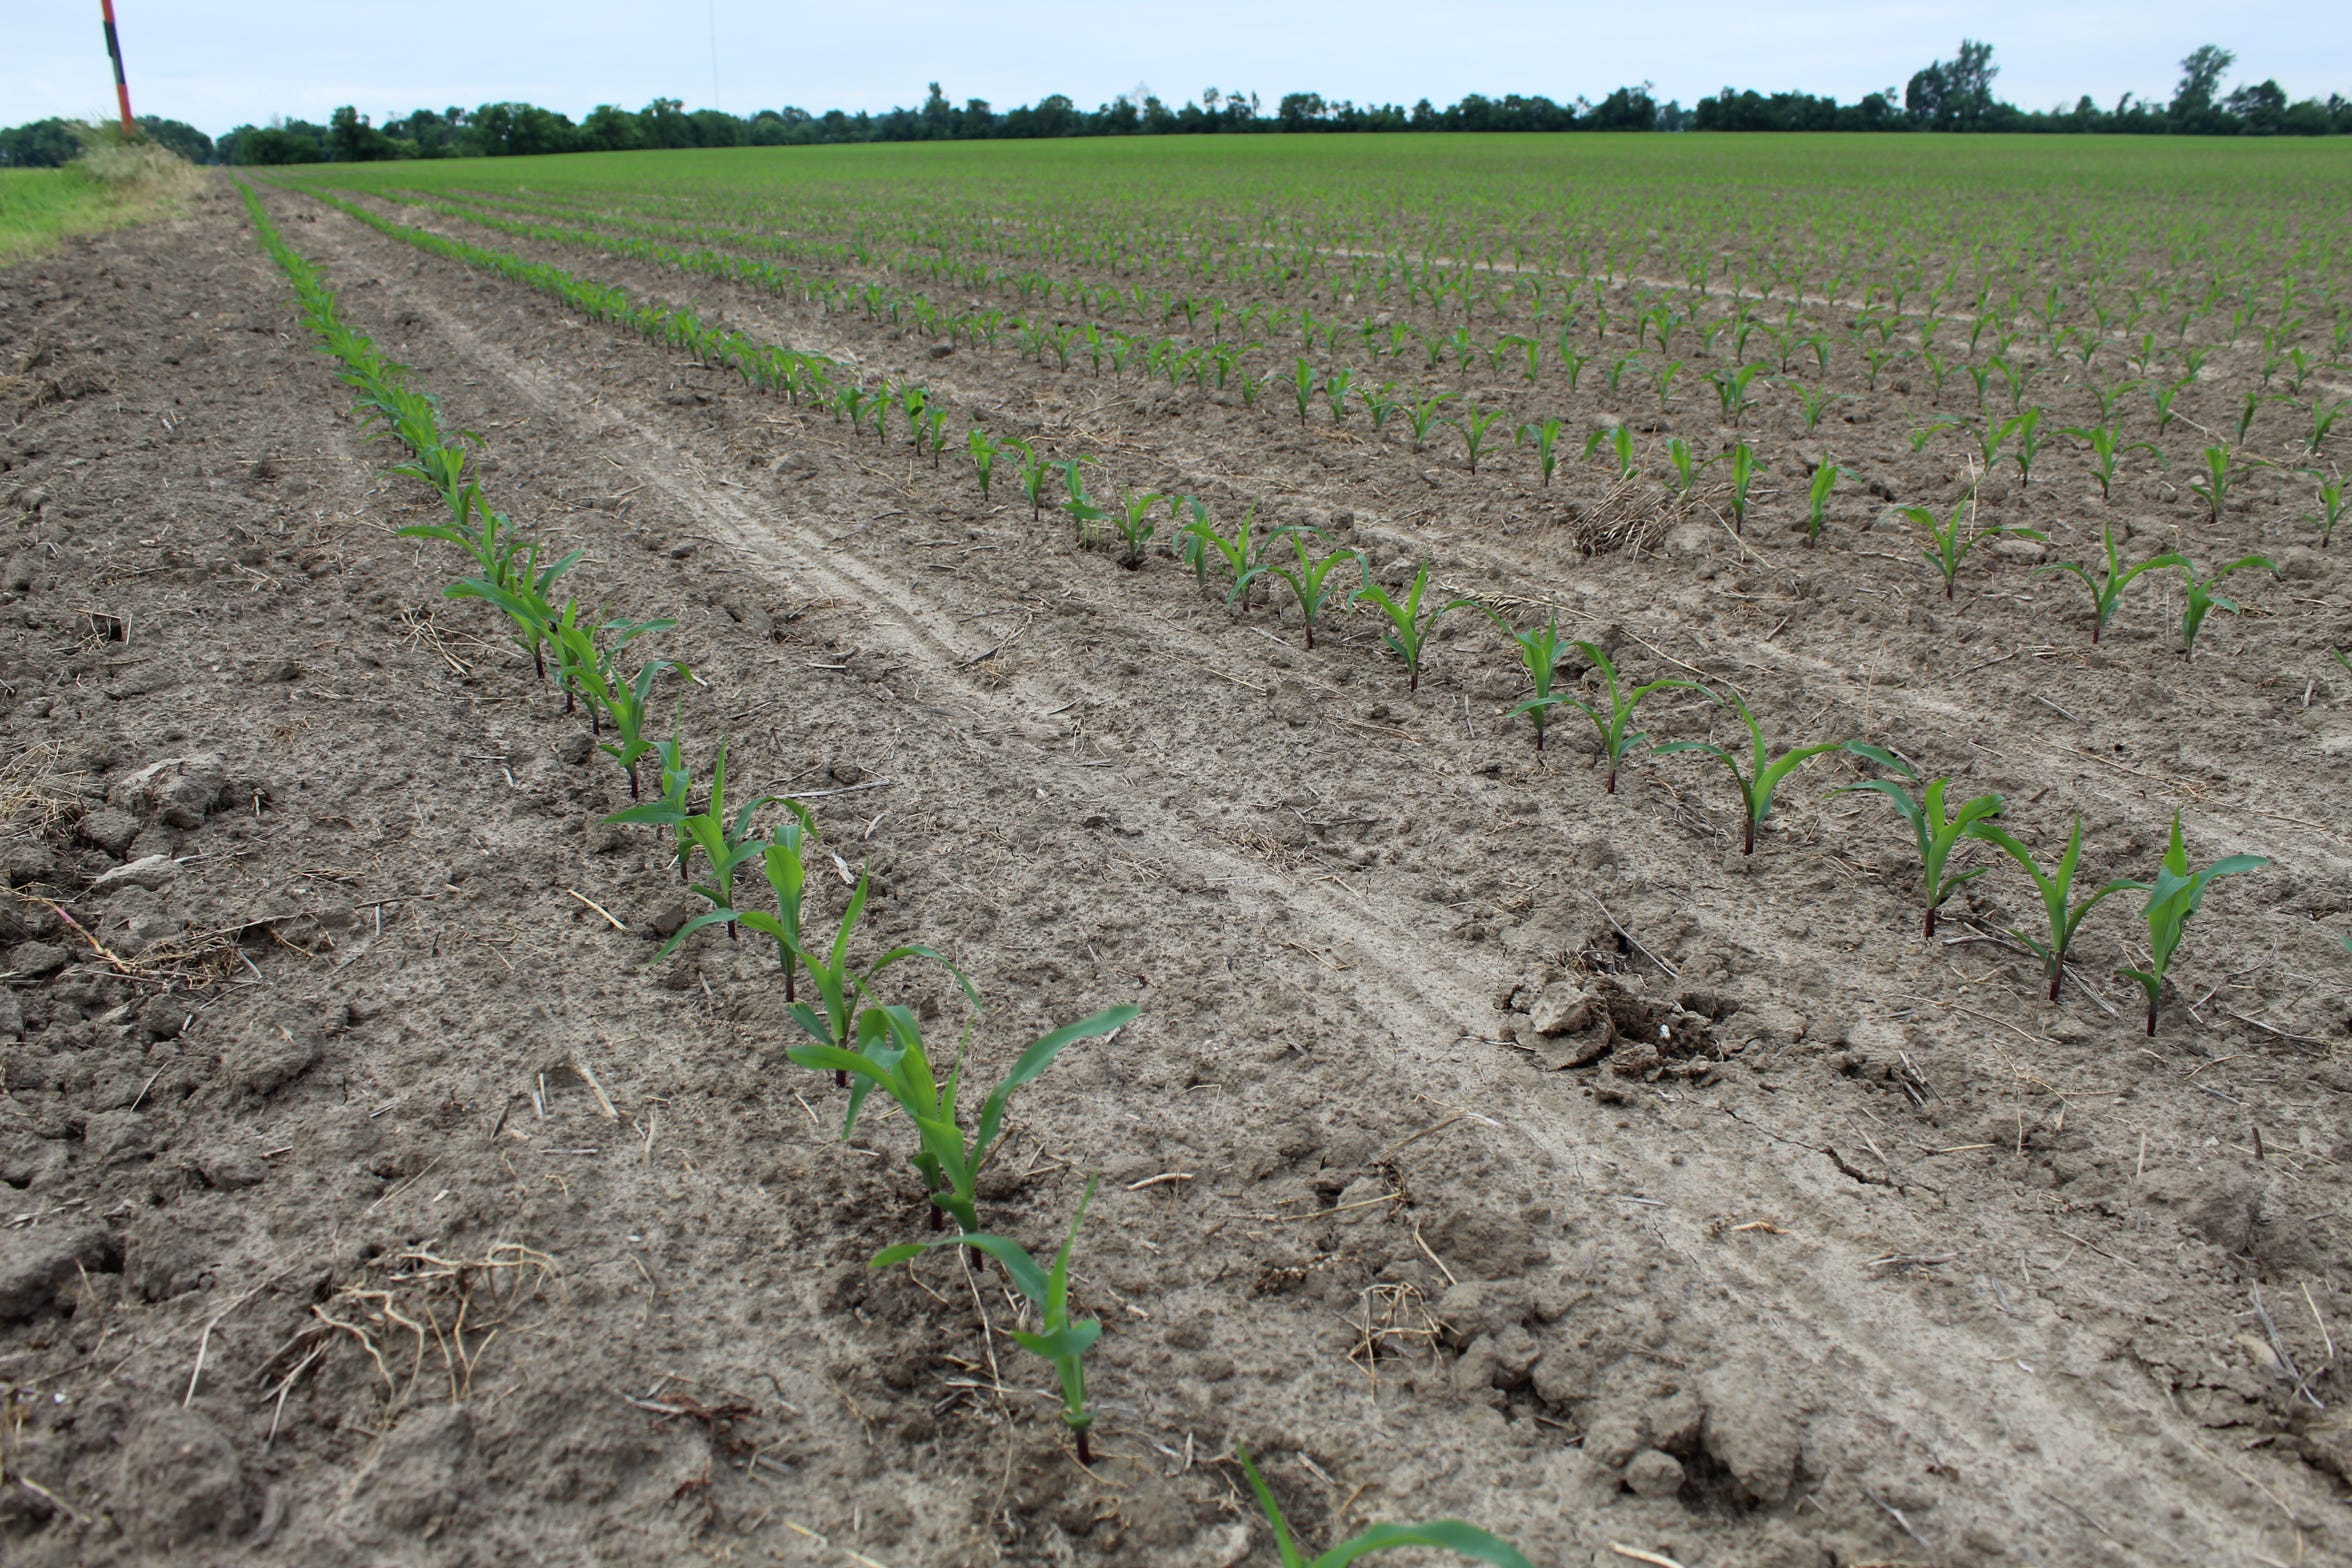 This is one of Chad Gargas' corn fields that did get planted this year in Ottawa County. He estimated he had planted only 157 acres of corn and 60 acres of soybeans on roughly 2,000 acres.